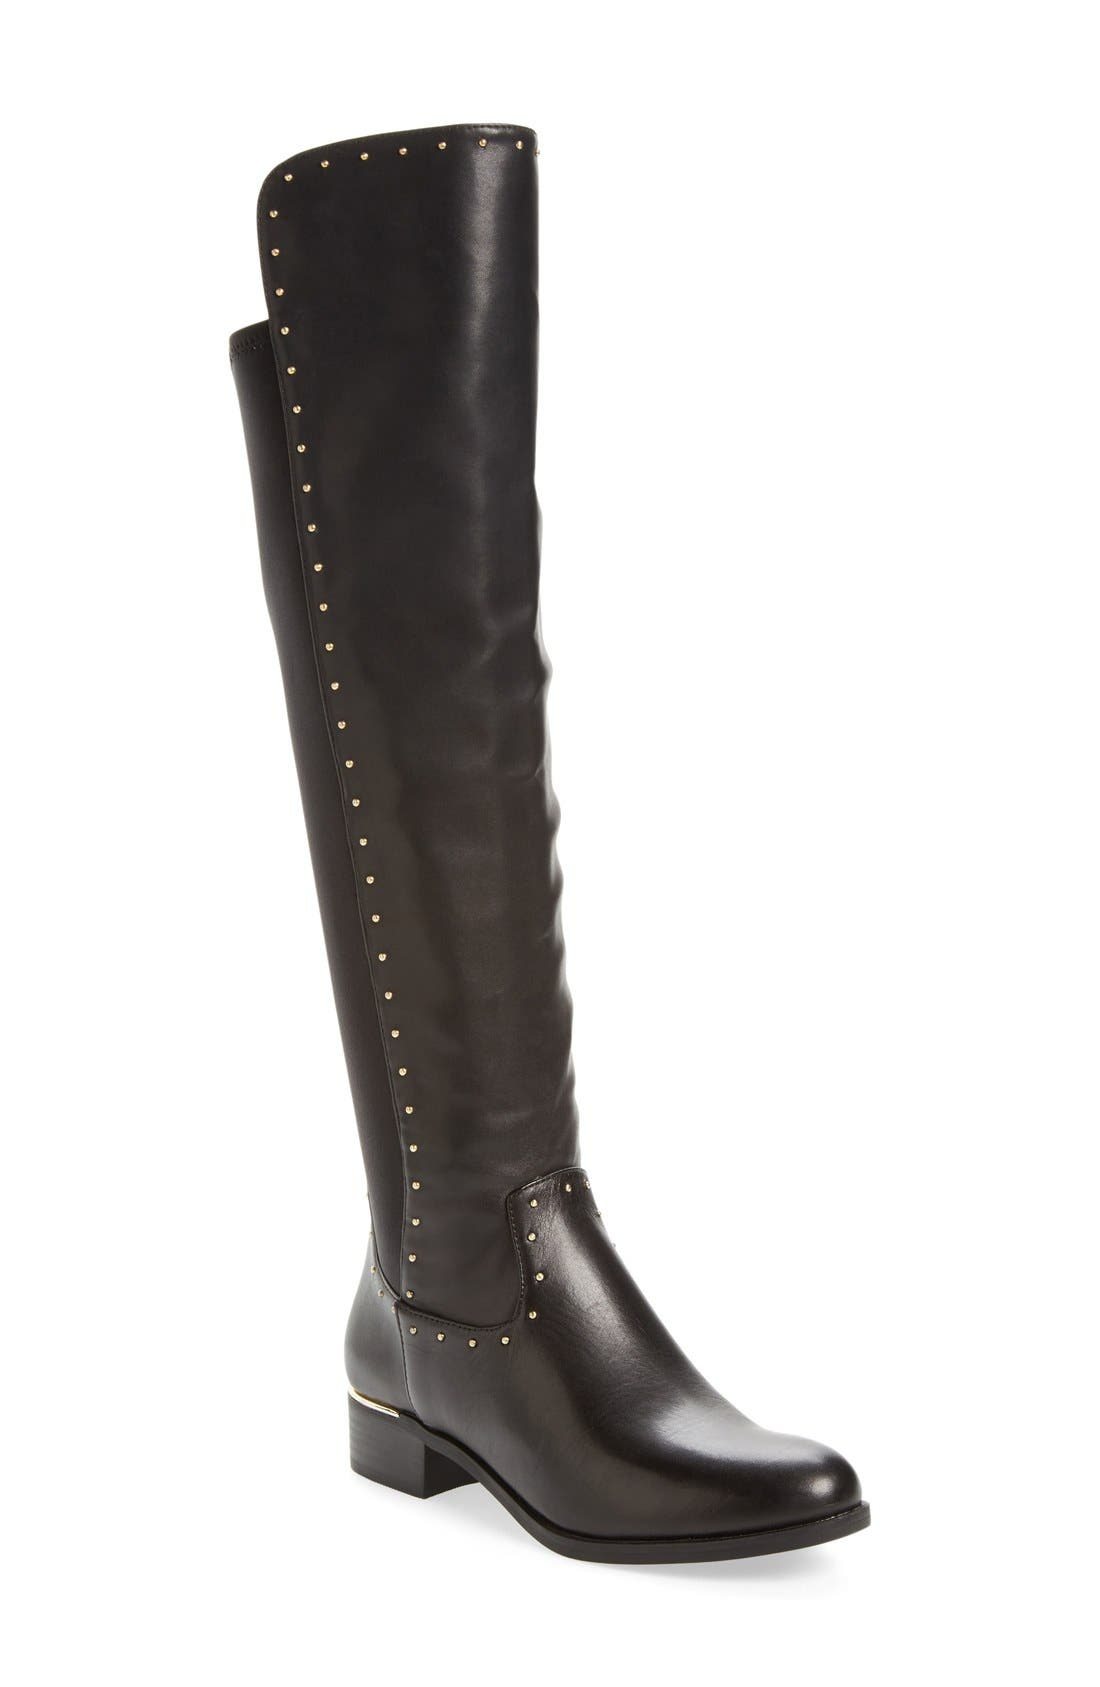 CALVIN KLEIN,                             Cynthia Studded Riding Boot,                             Main thumbnail 1, color,                             001